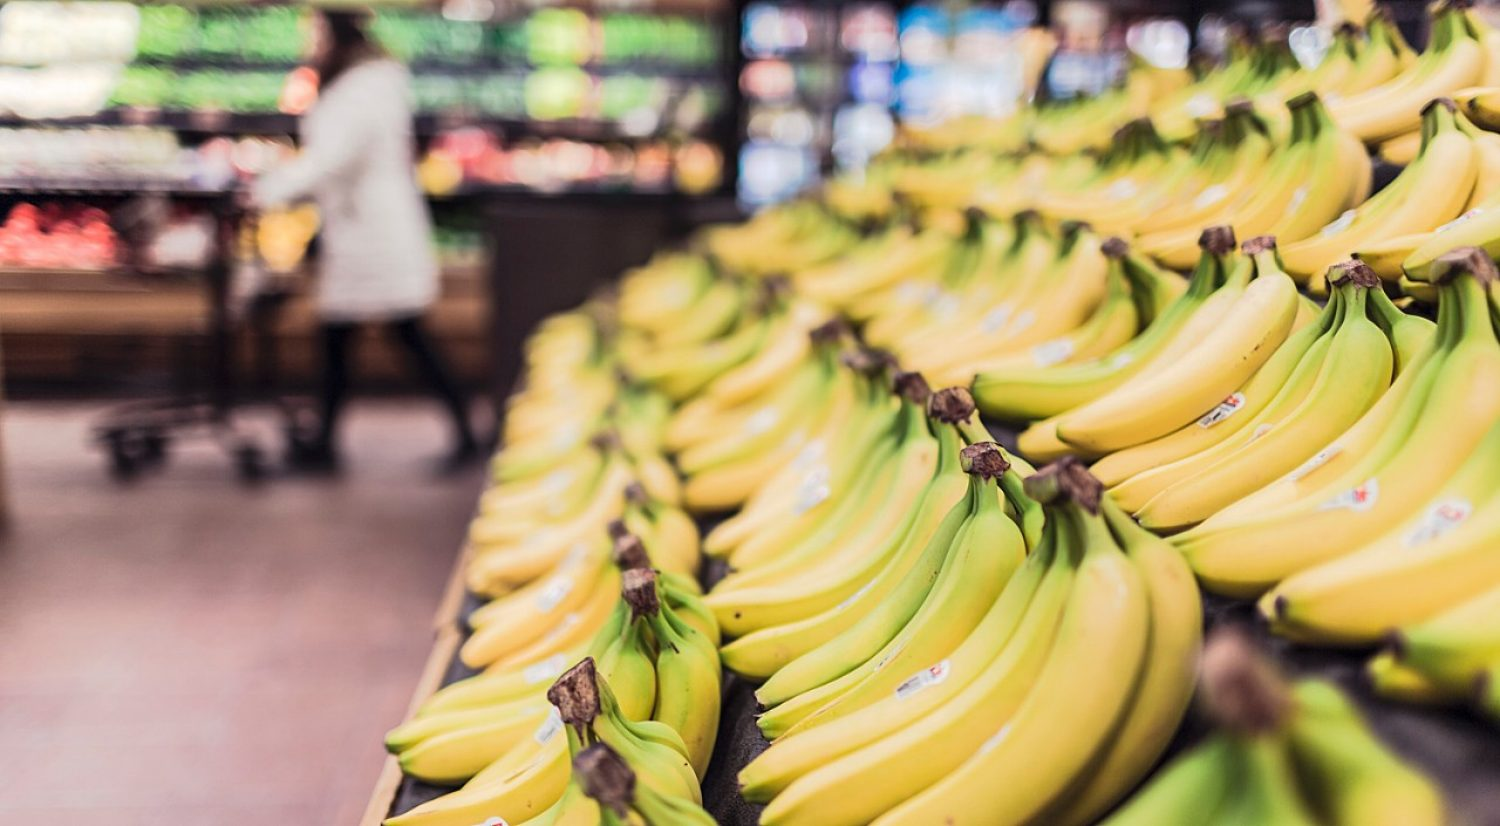 Supermarket display of bananas